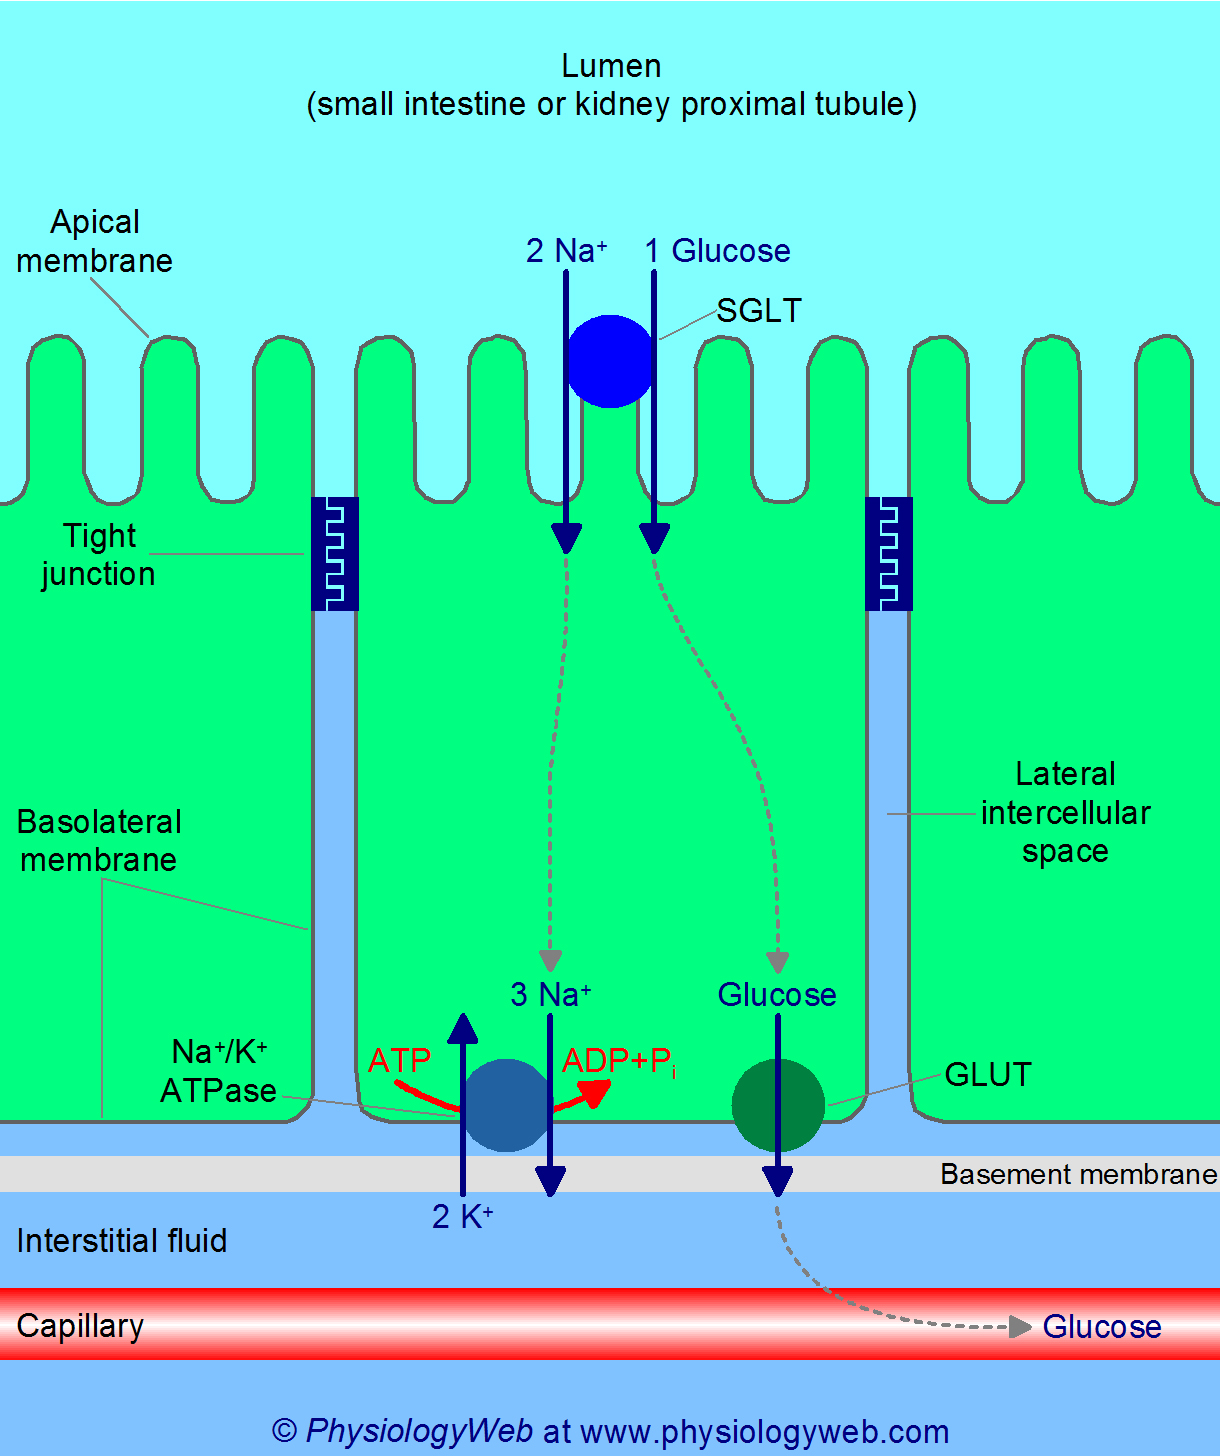 Transepithelial glucose transport in the small intestine and kidney proximal tubules